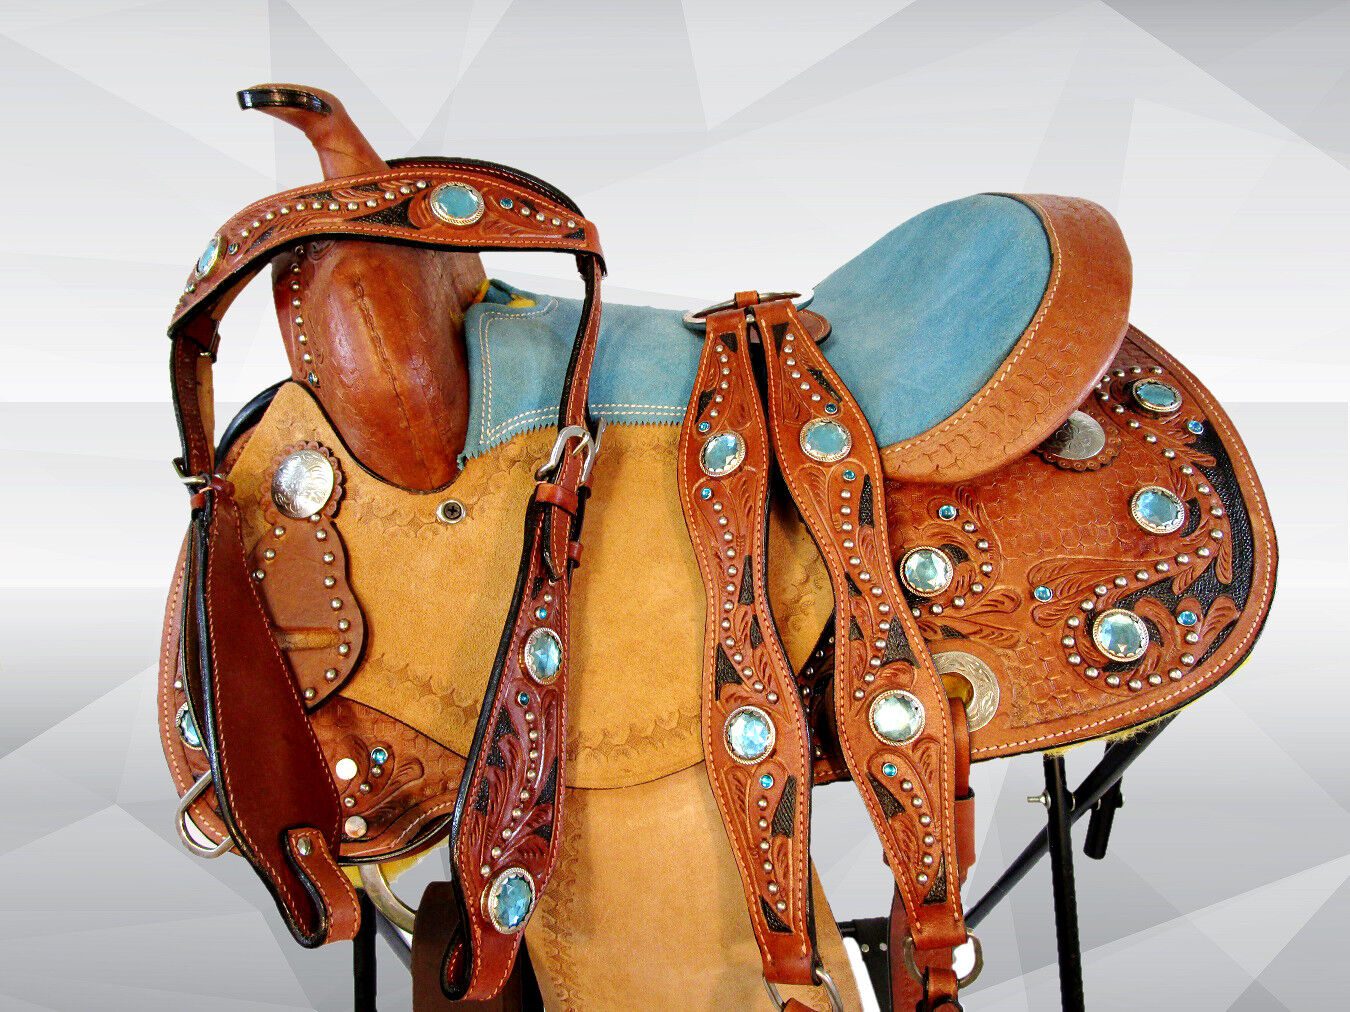 12 13 PREMIUM  LEATHER SHOW STAR TOOLED KIDS  LD BARREL YOUTH WESTERN SADDLE  cheap in high quality